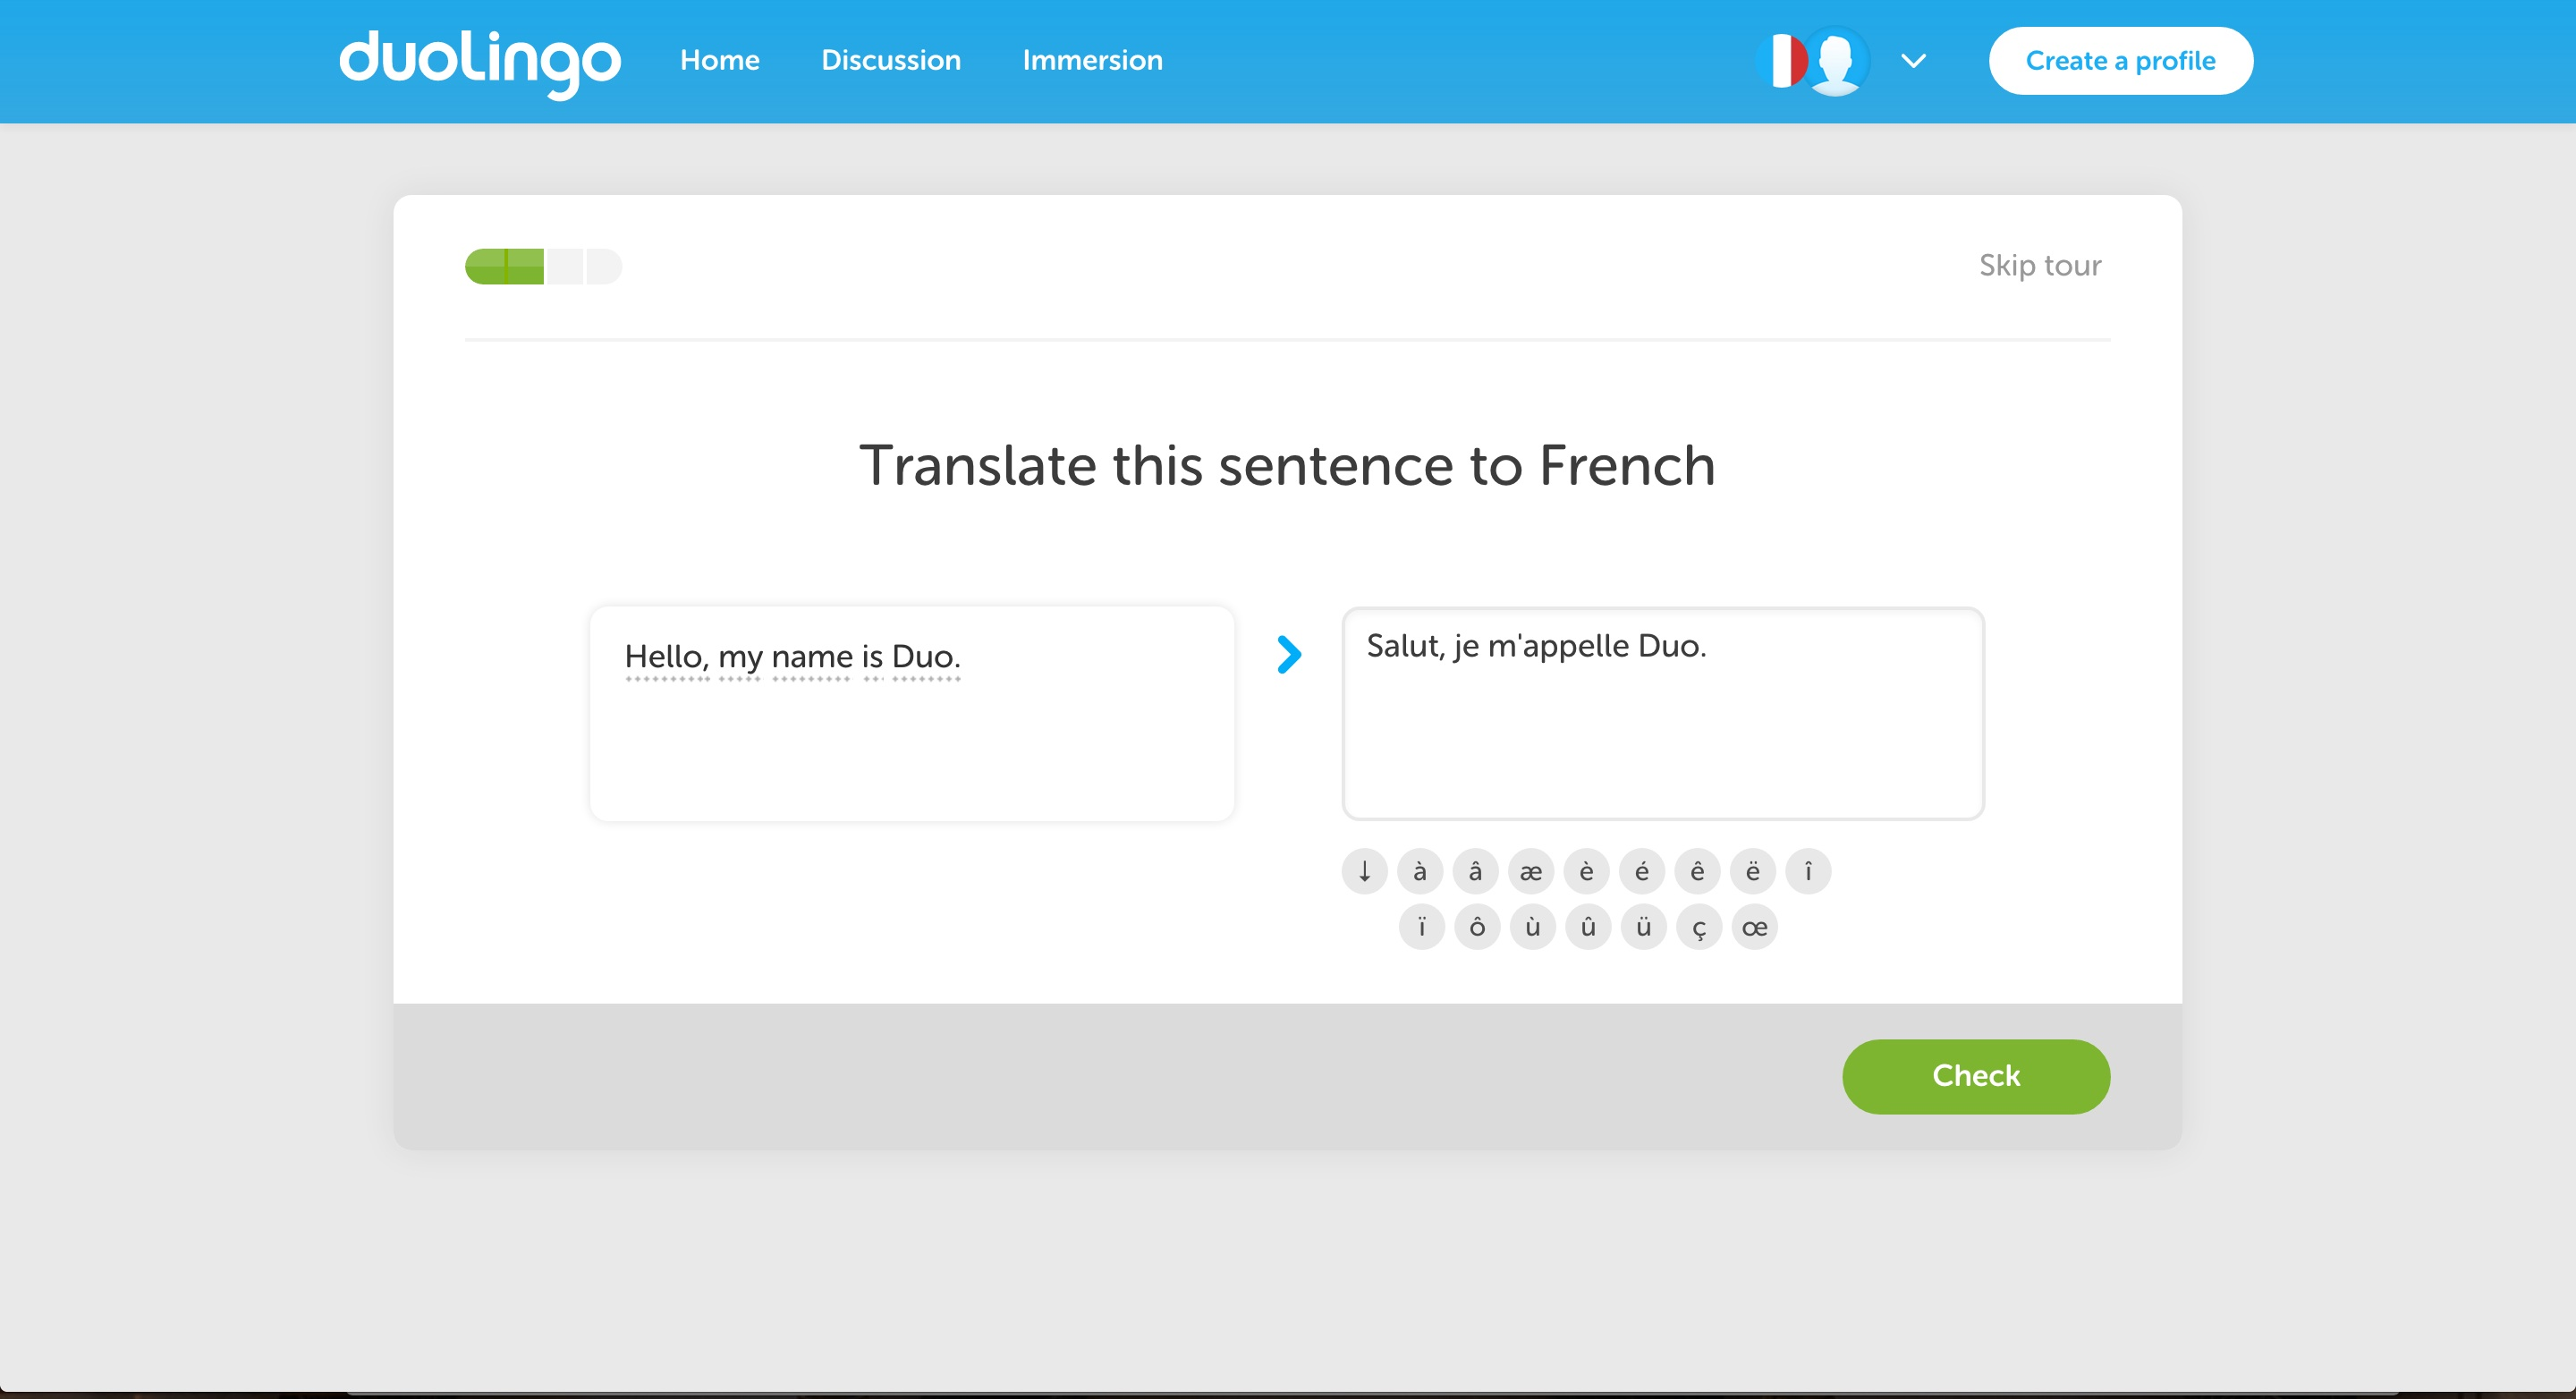 duolingo user onboarding step 7